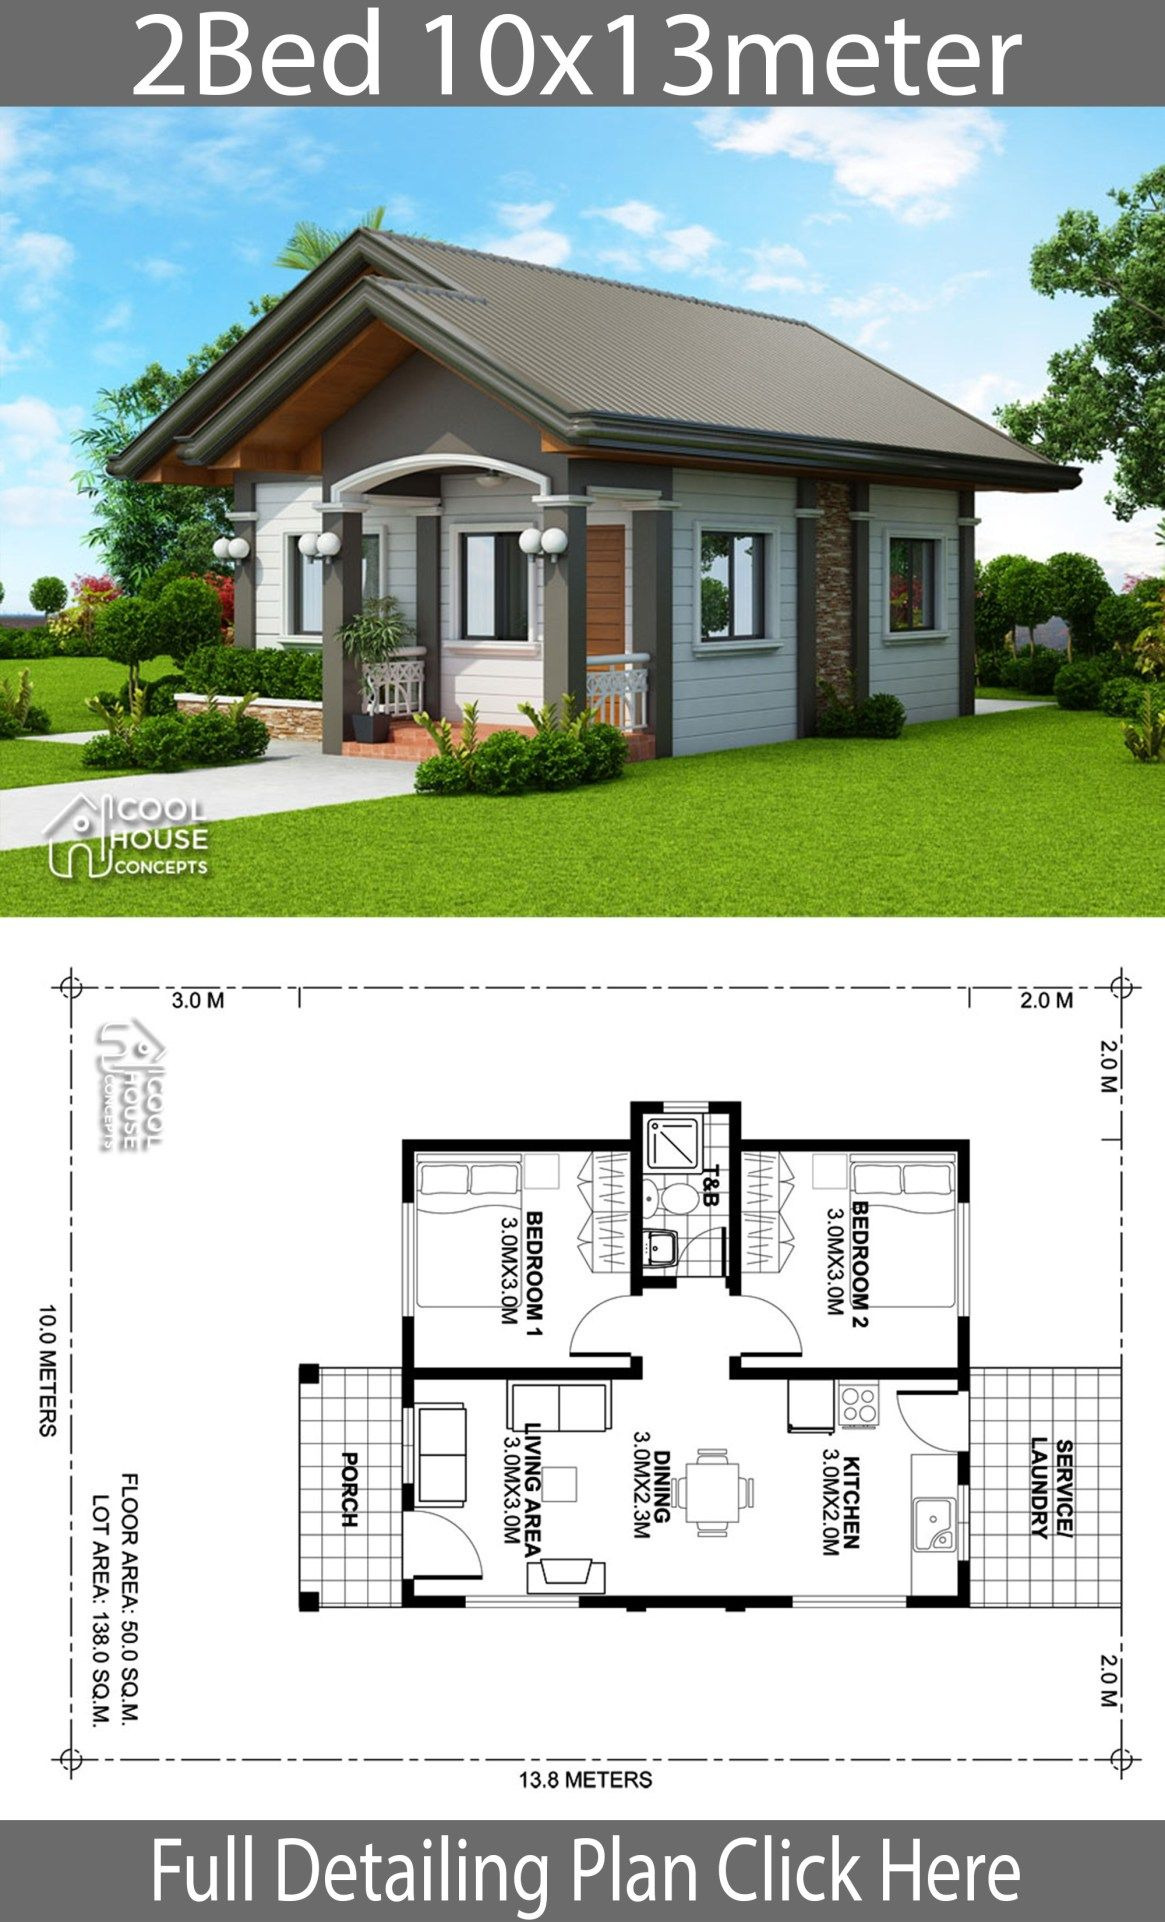 Small House Design Pictures Beautiful Home Design Plan 10x13m with 2 Bedrooms